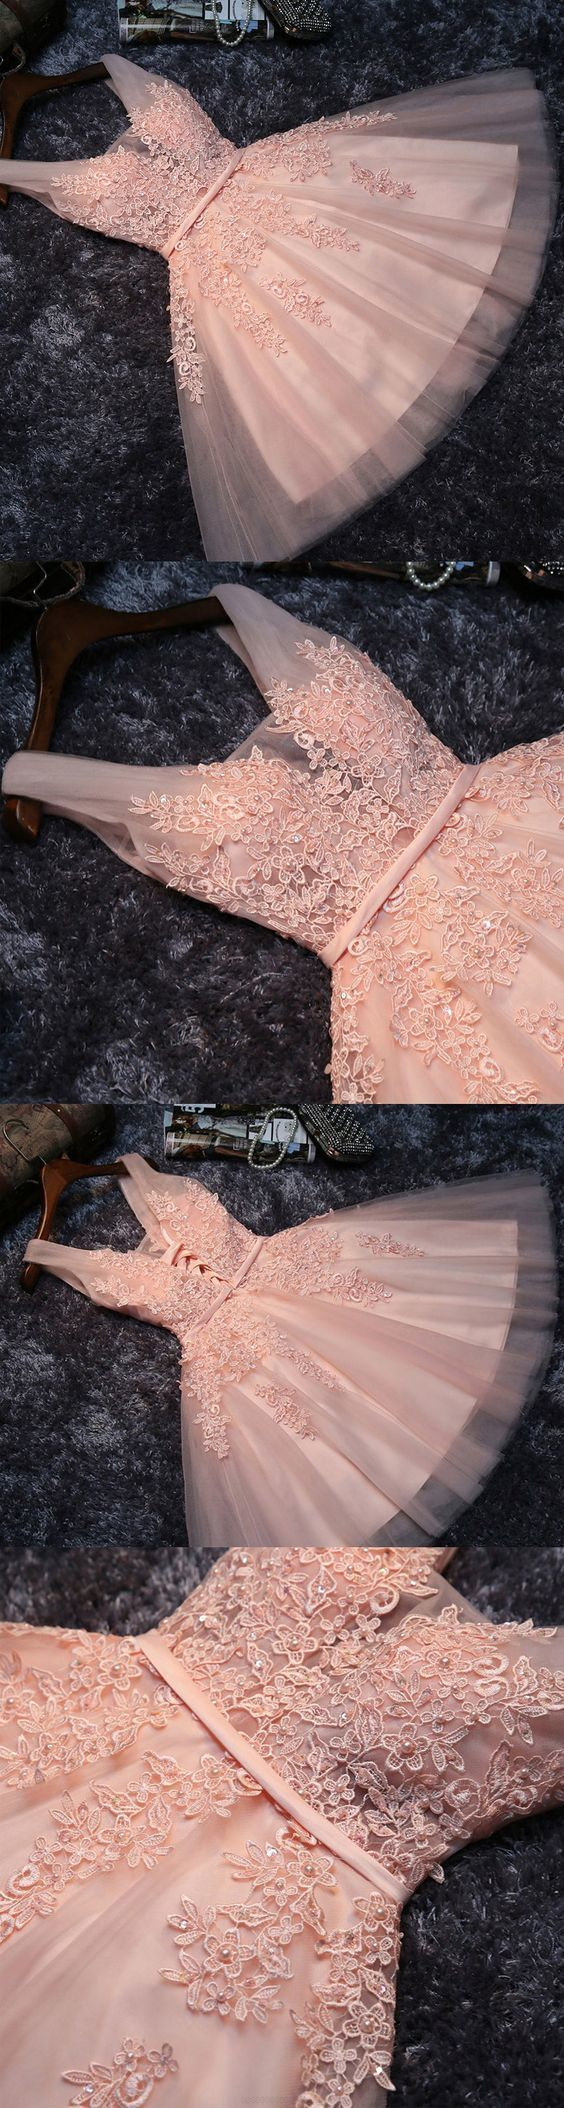 V-Neck Party Dresses, Pink Short Prom Dresses, 2019 Homecoming Dress Sexy A-line